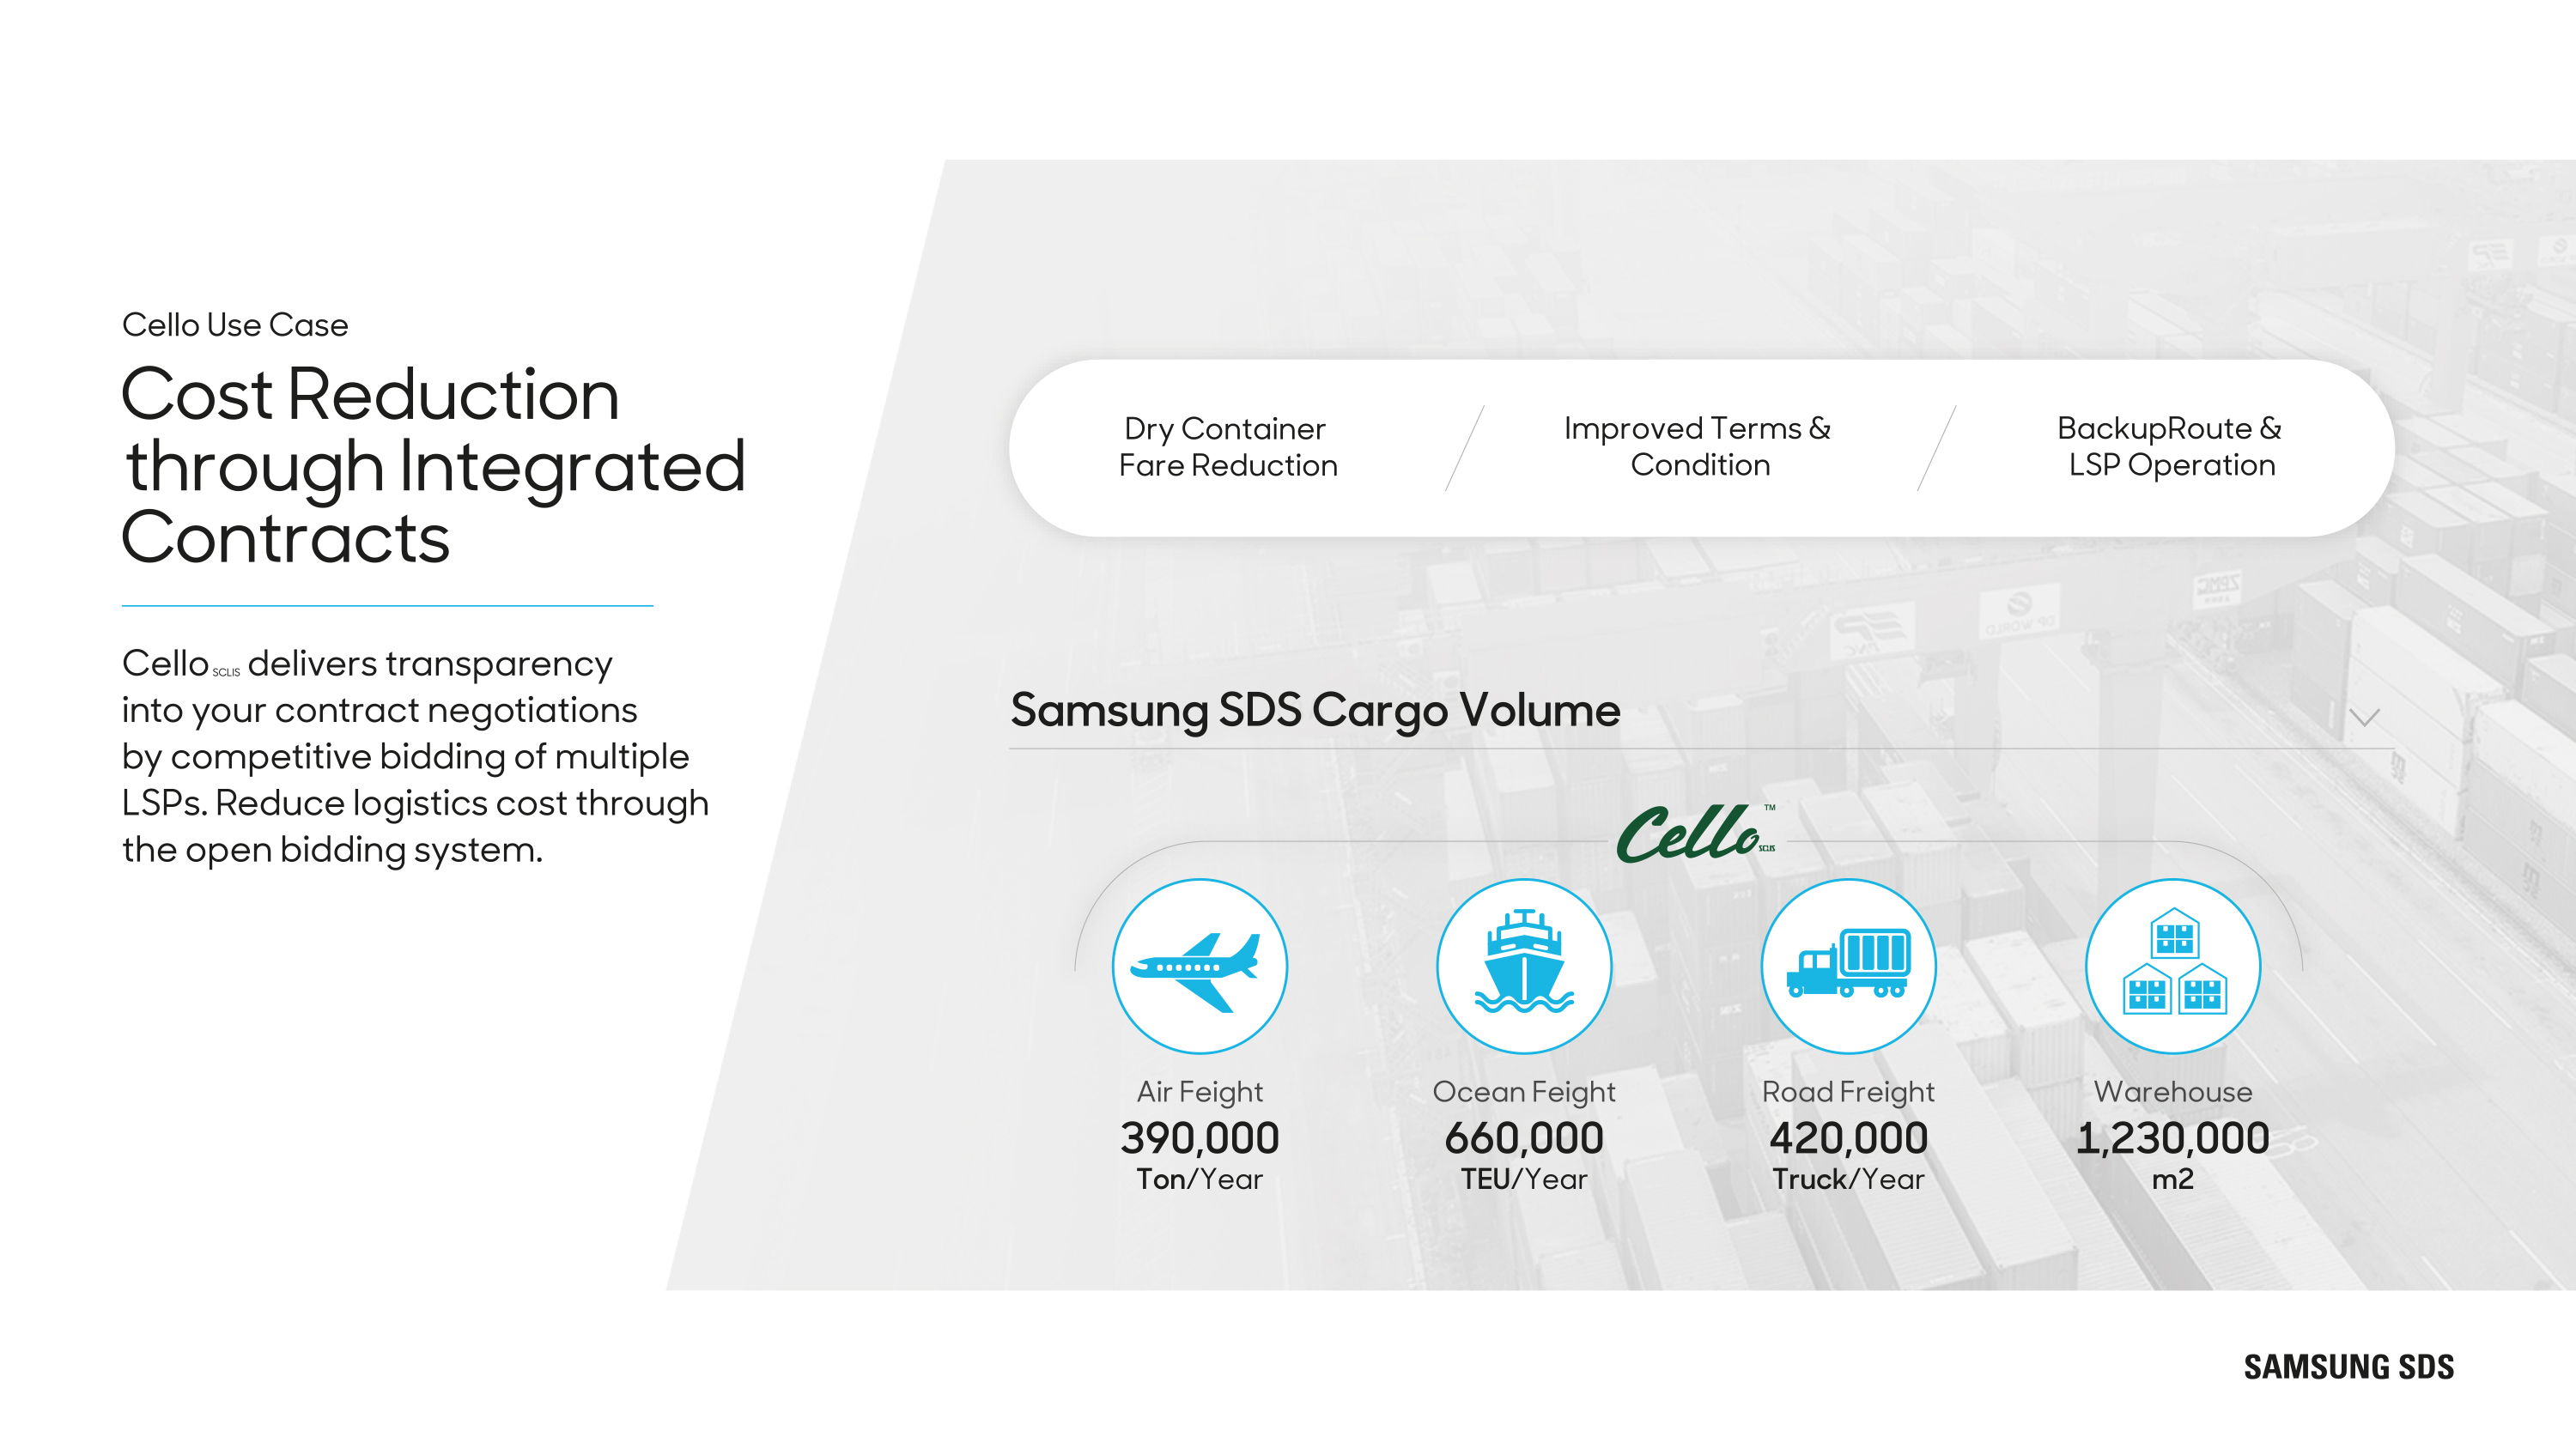 Cello delivers transparency into your contract negotiations by competitive bidding of multiple LSPs. Reduce logistics cost through the open bidding system.